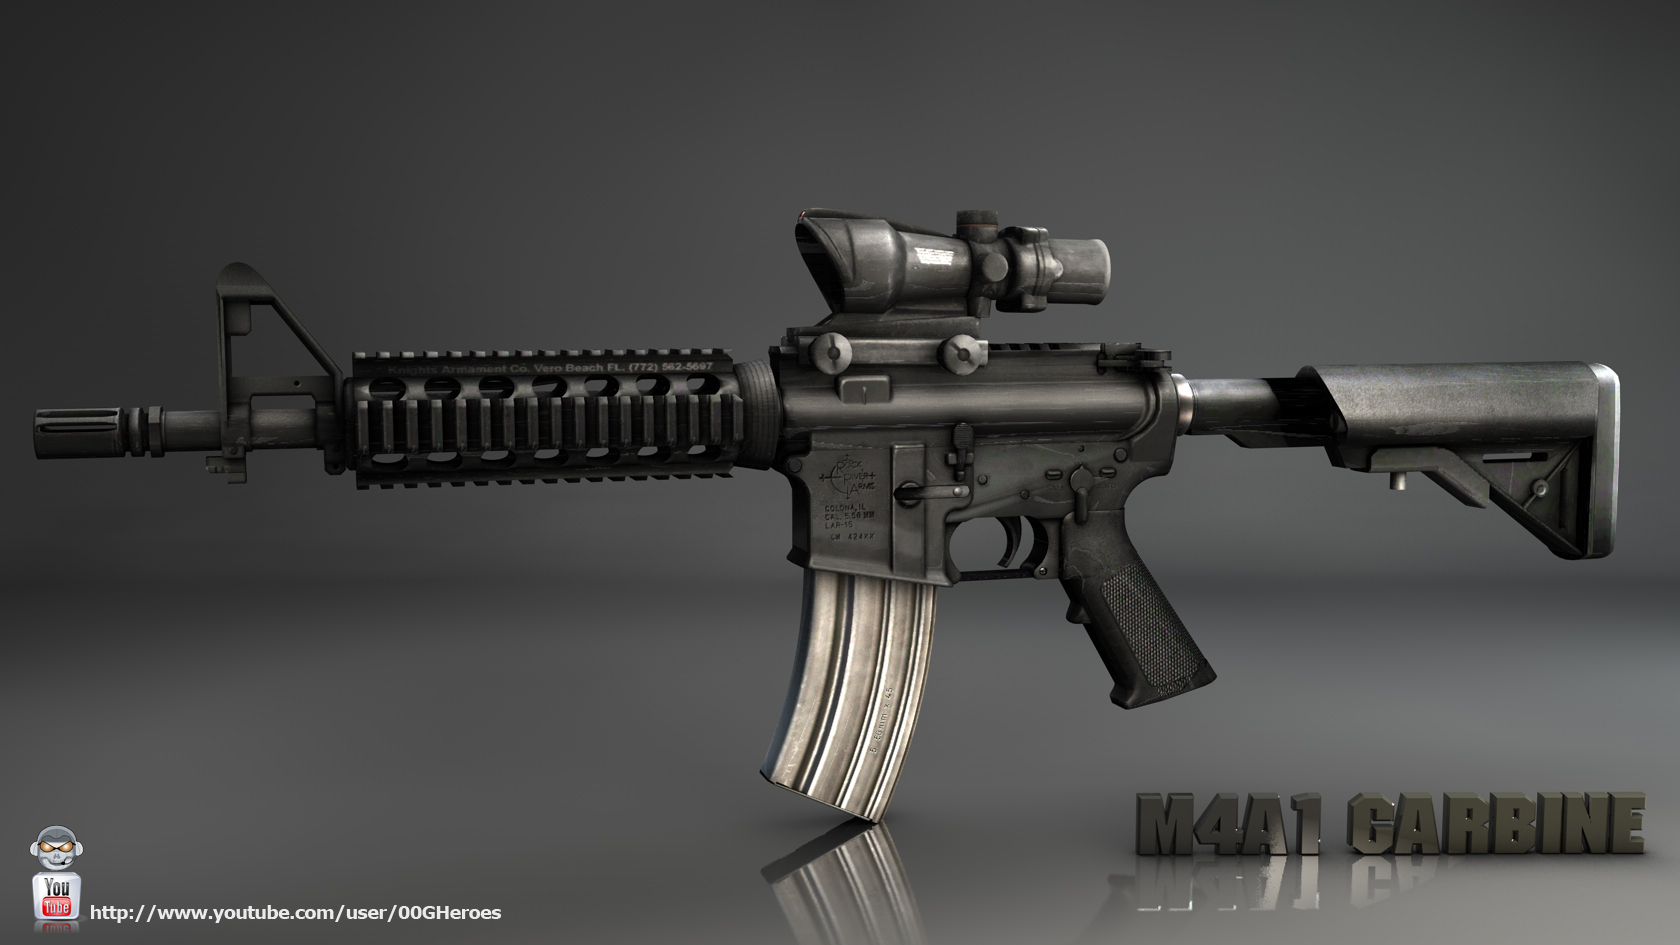 Top M4a1 Carbine Wallpapers